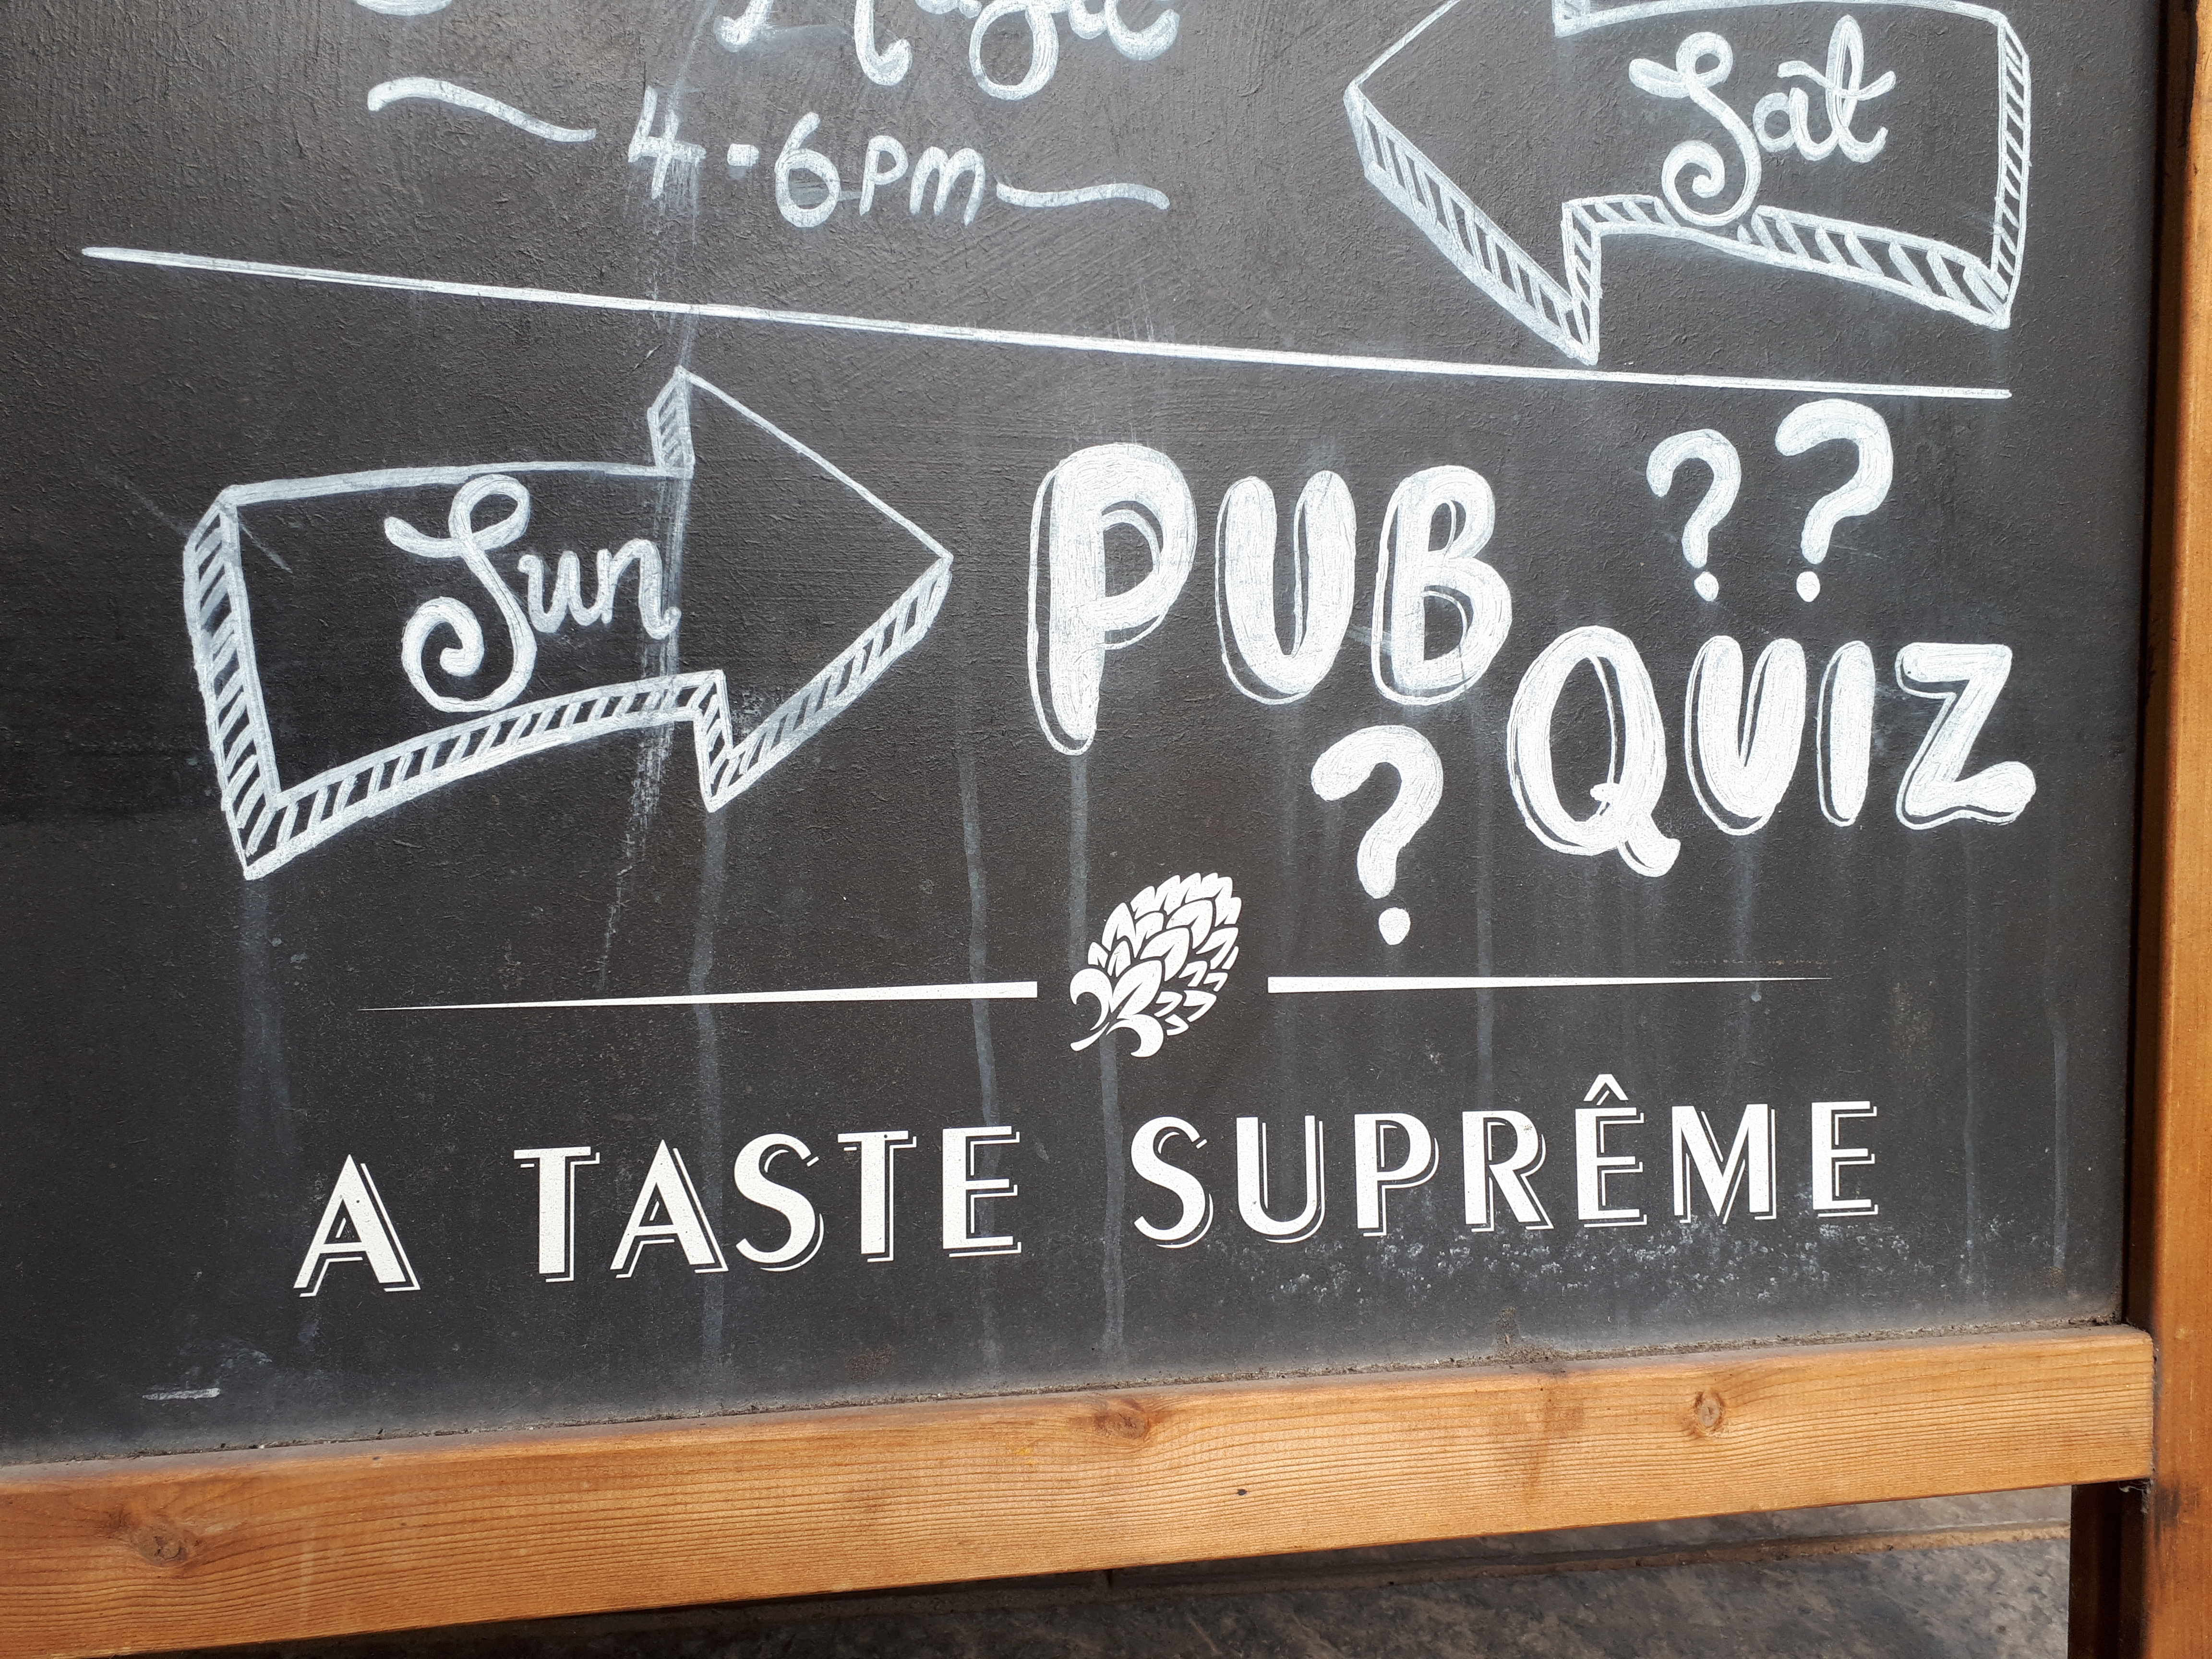 A practical guide to the pub quizzes of Stirling – BRIG